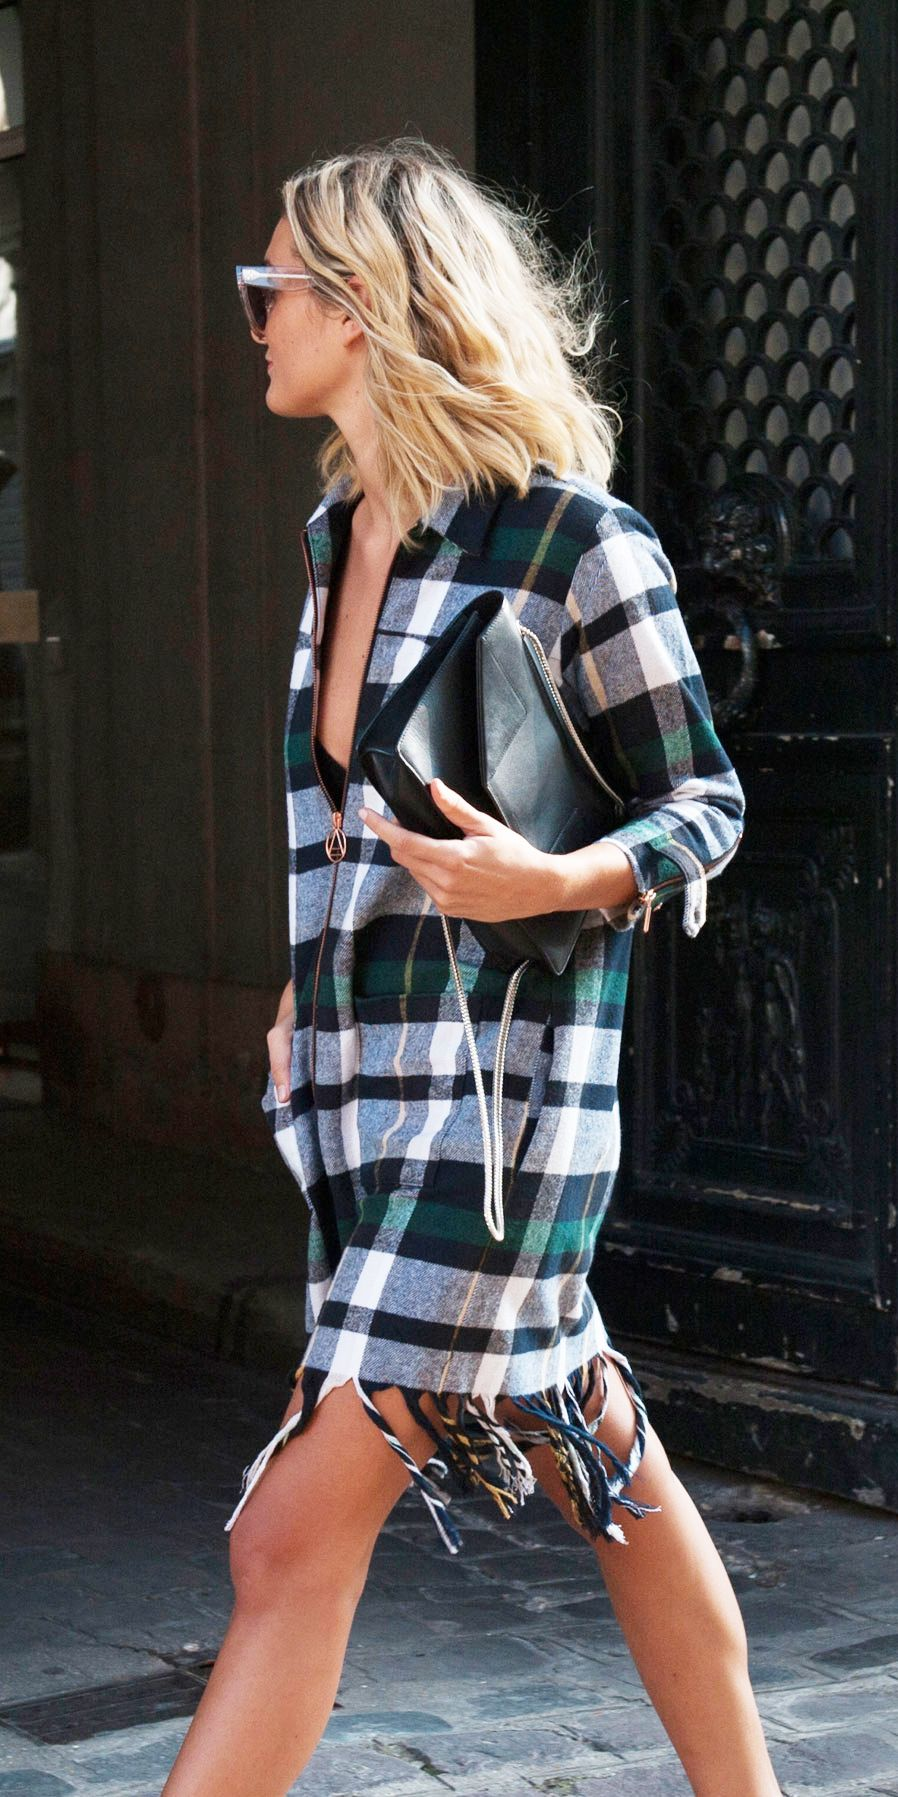 Pin by Candice Lin on Fashion  Pinterest  Plaid Fringe dress and